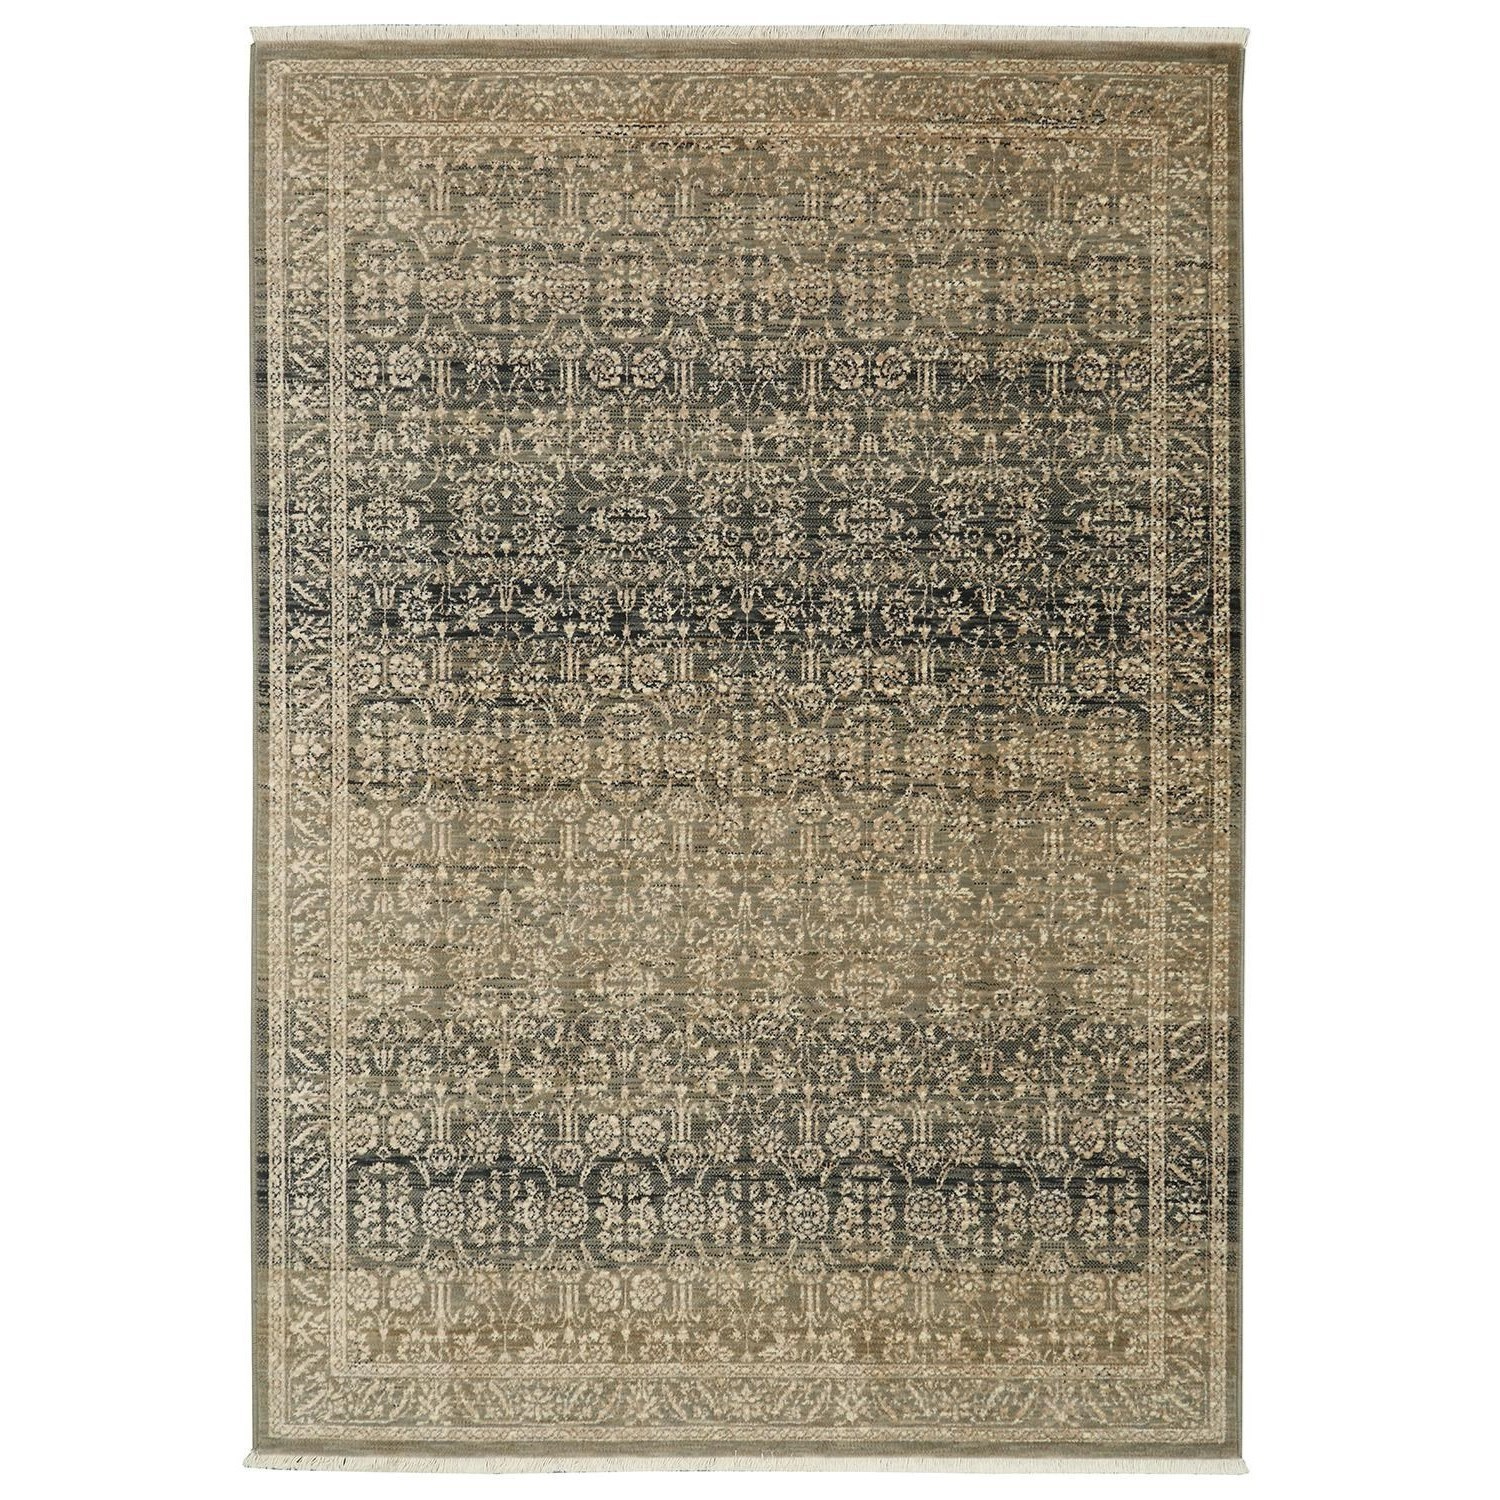 Titanium 9'4x12'9 Verta Gray Rug by Karastan Rugs at Alison Craig Home Furnishings